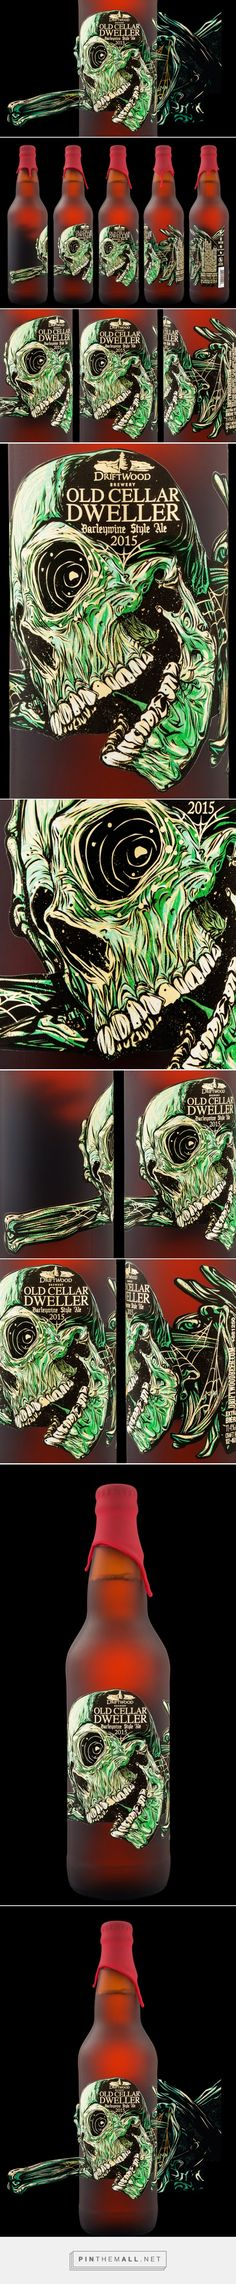 Old Cellar Dweller Barleywine label designed by Hired Guns Creative​ - http://www.packagingoftheworld.com/2015/12/old-cellar-dweller-barleywine.html